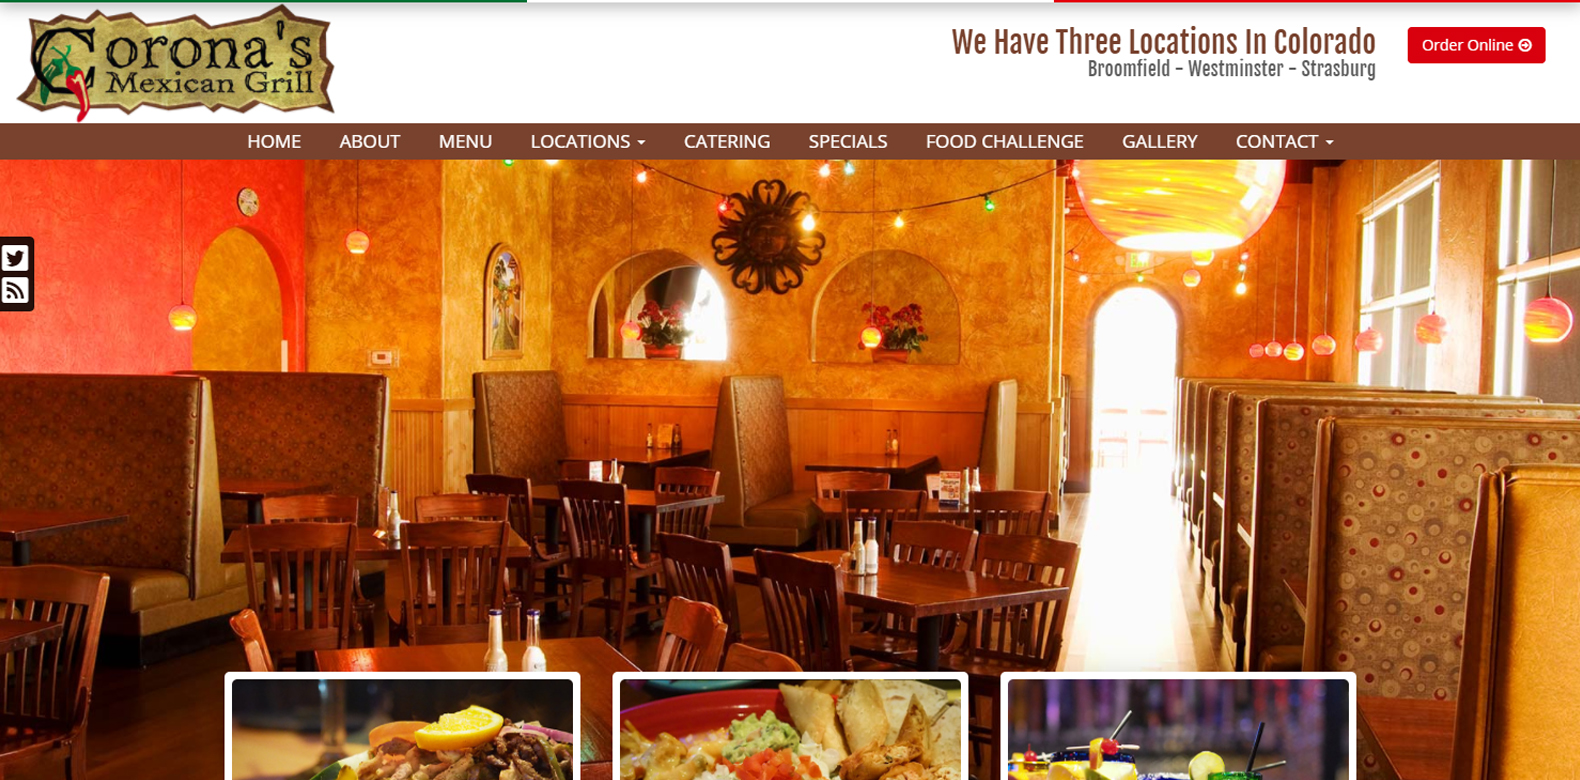 New Website Launch: Corona's Mexican Grill